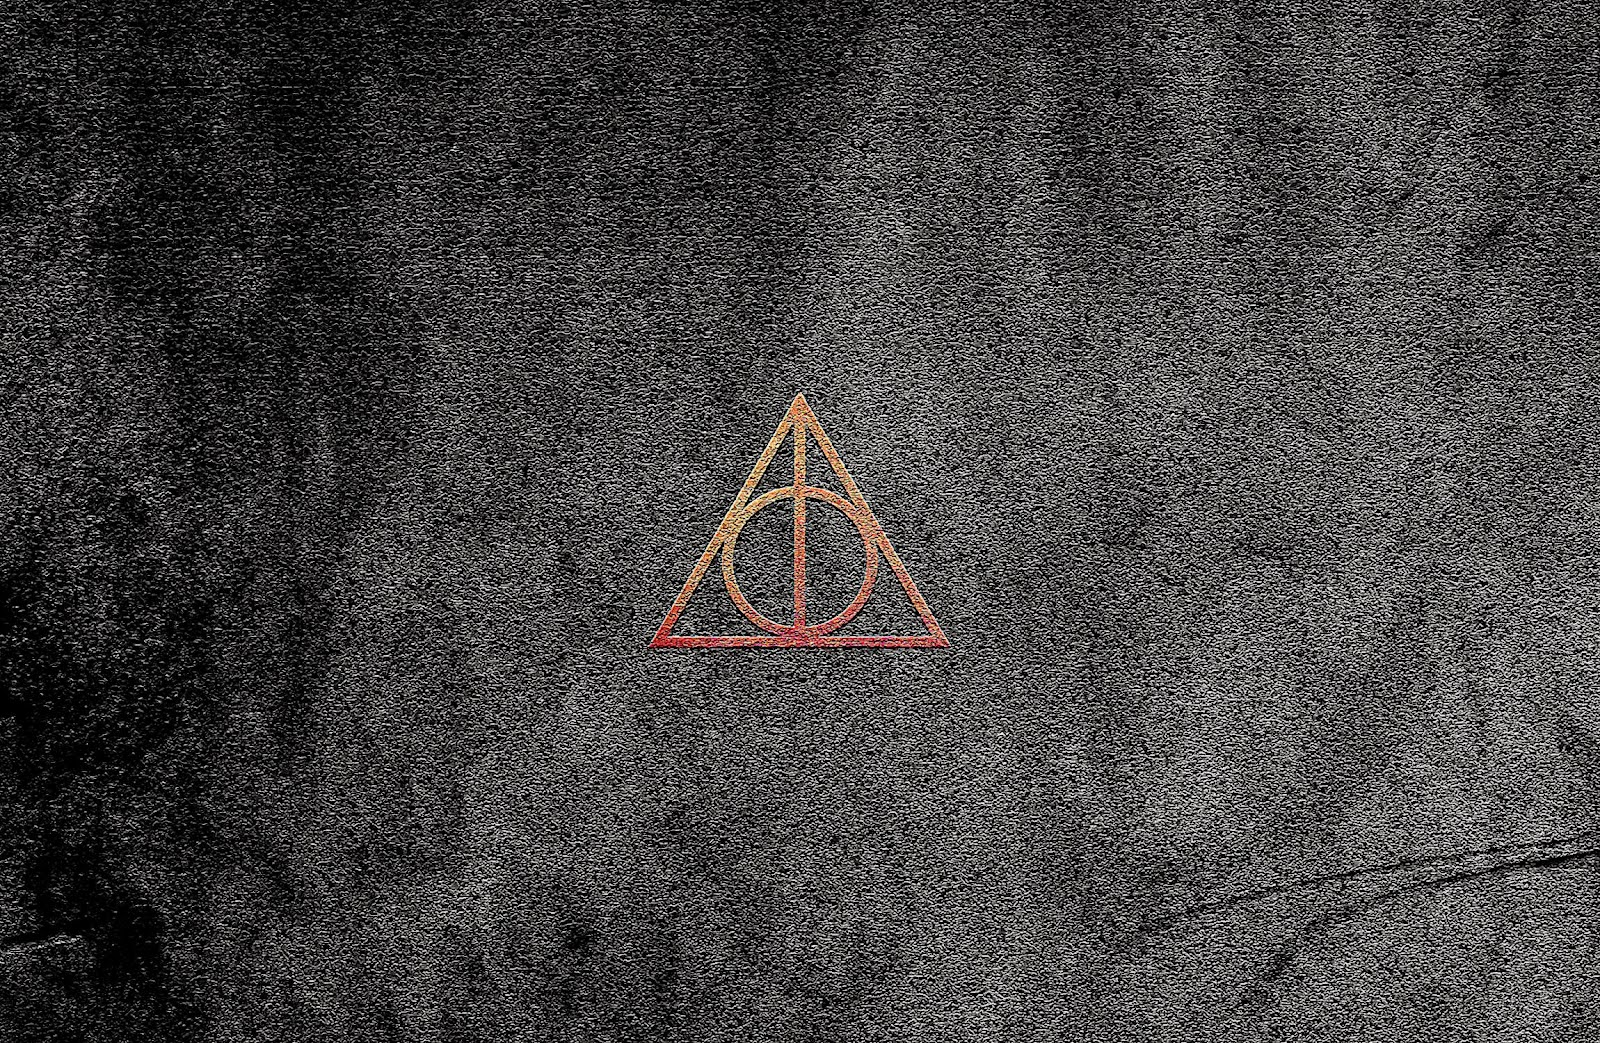 Deathly Hallows Texture by SpuriusAntonius on DeviantArt